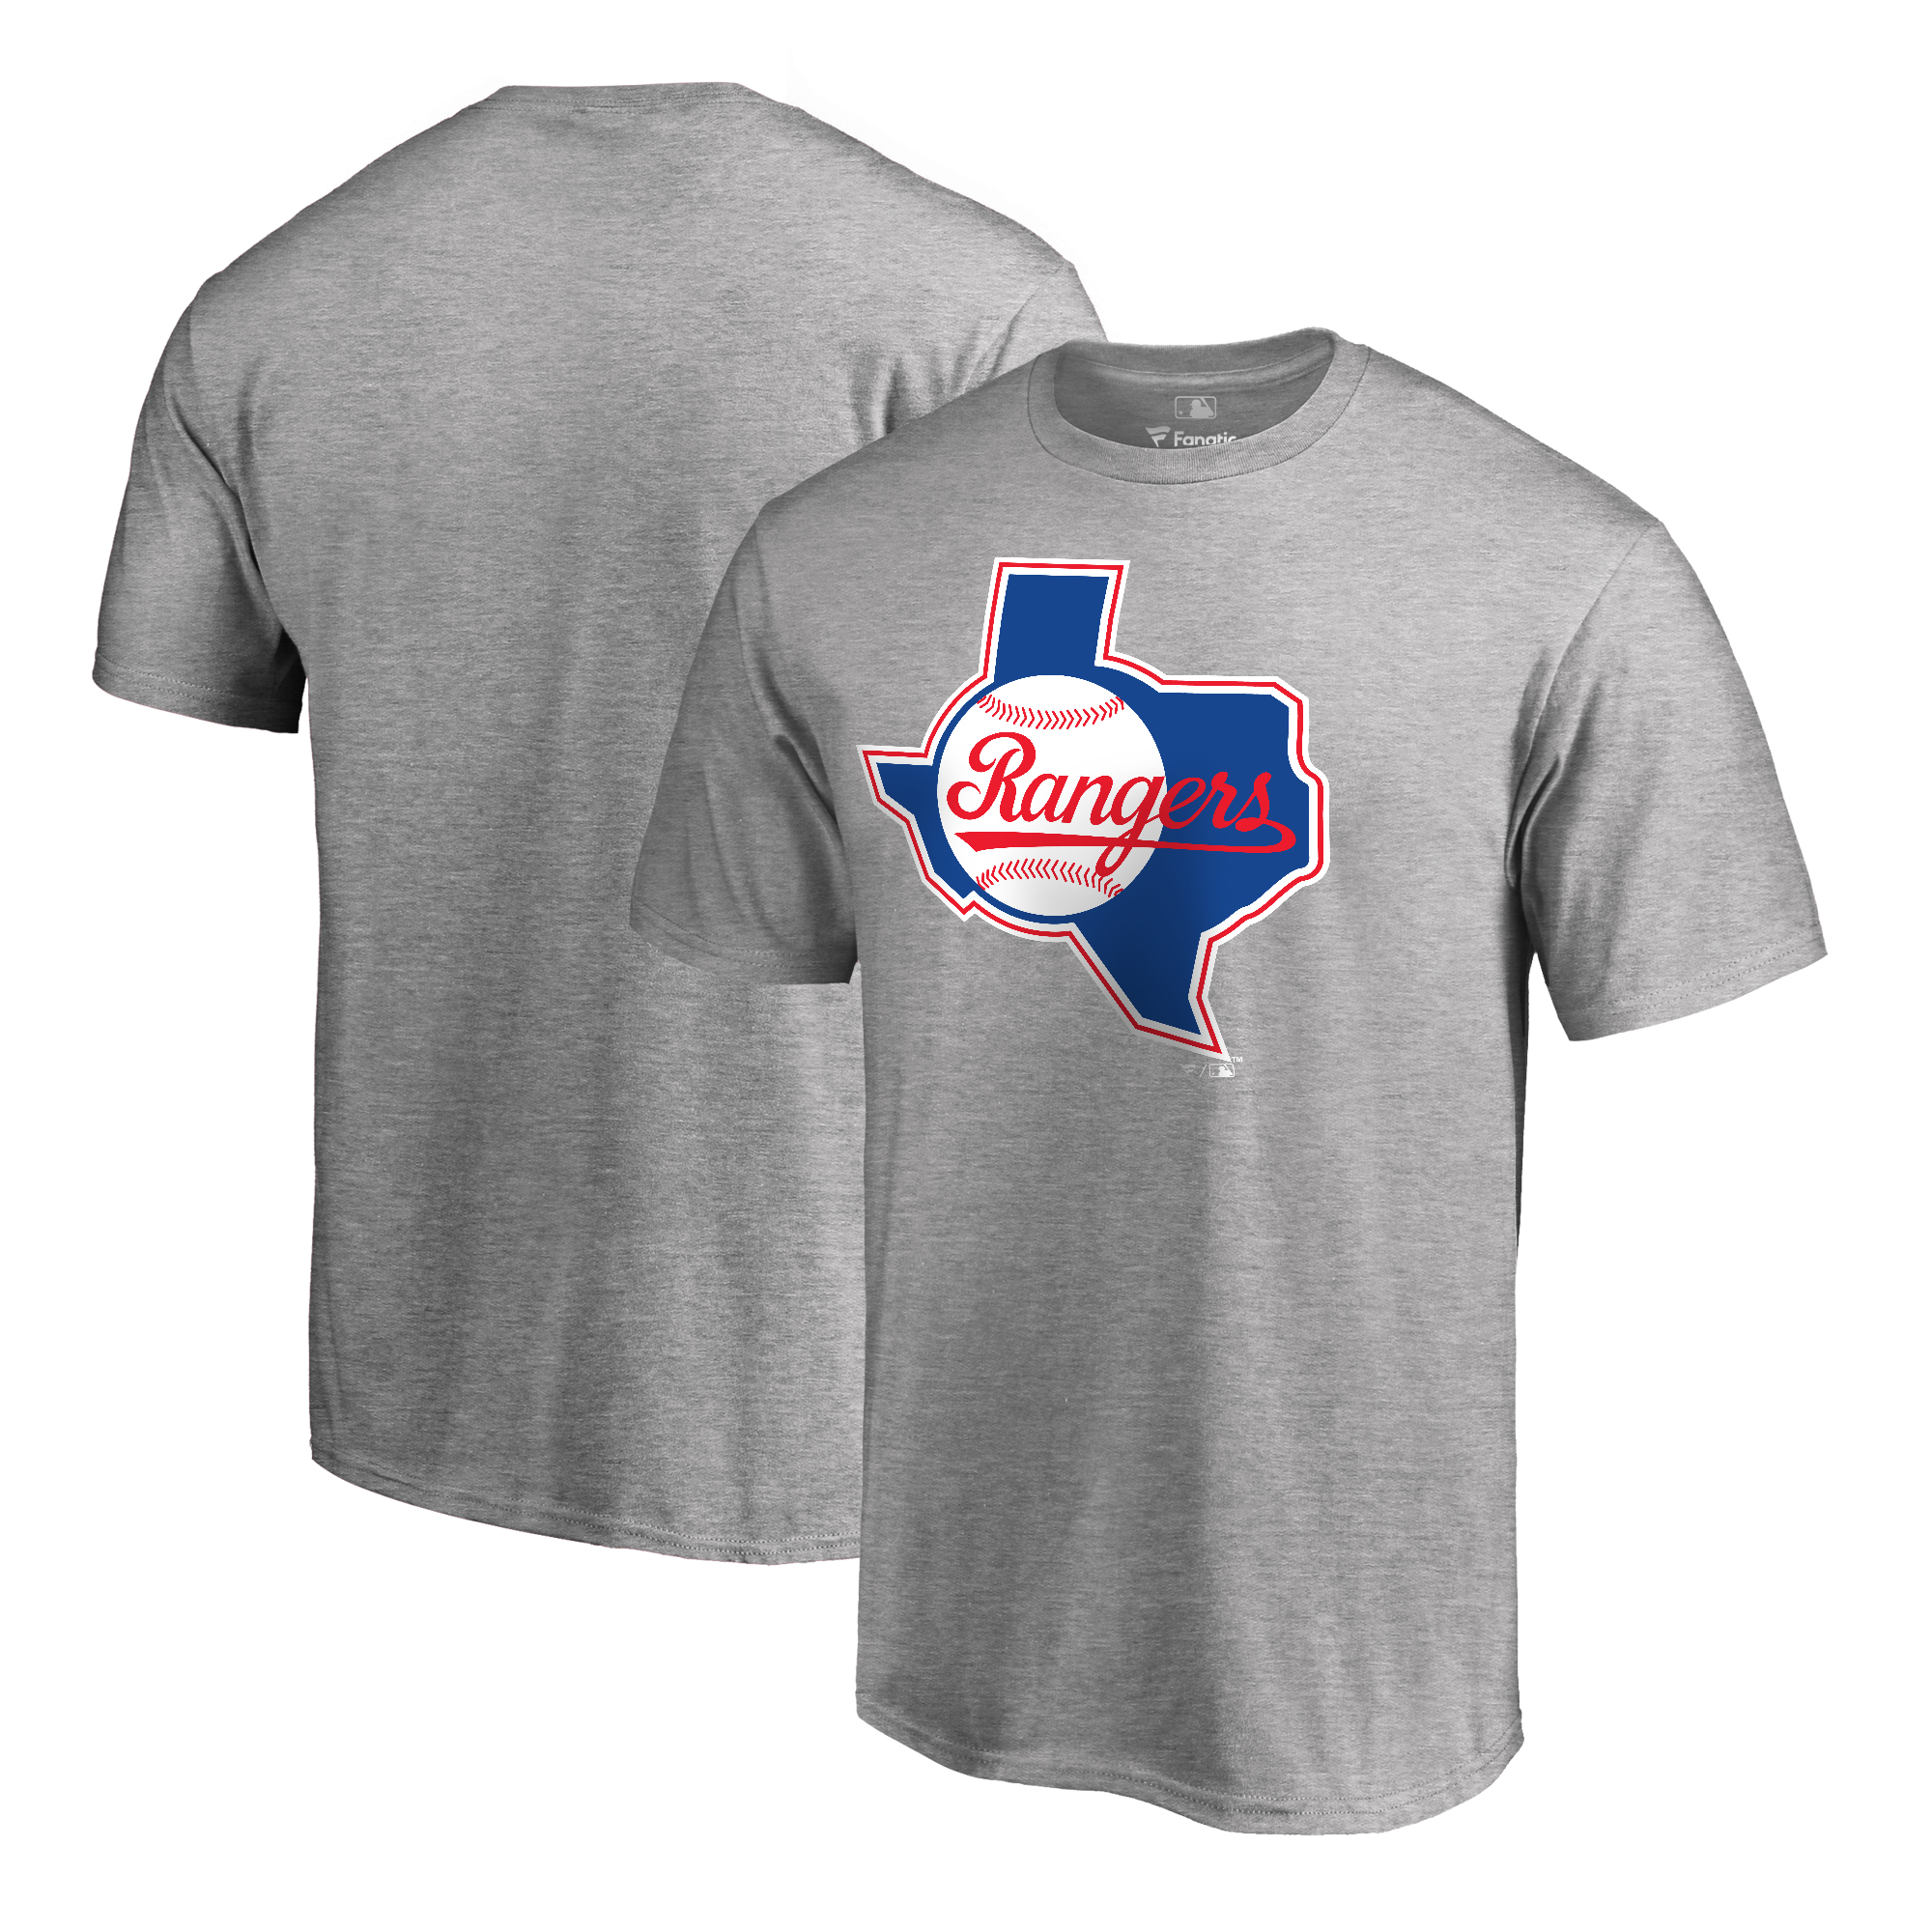 Texas Rangers Fanatics Branded Cooperstown Collection Huntington T-Shirt - Ash